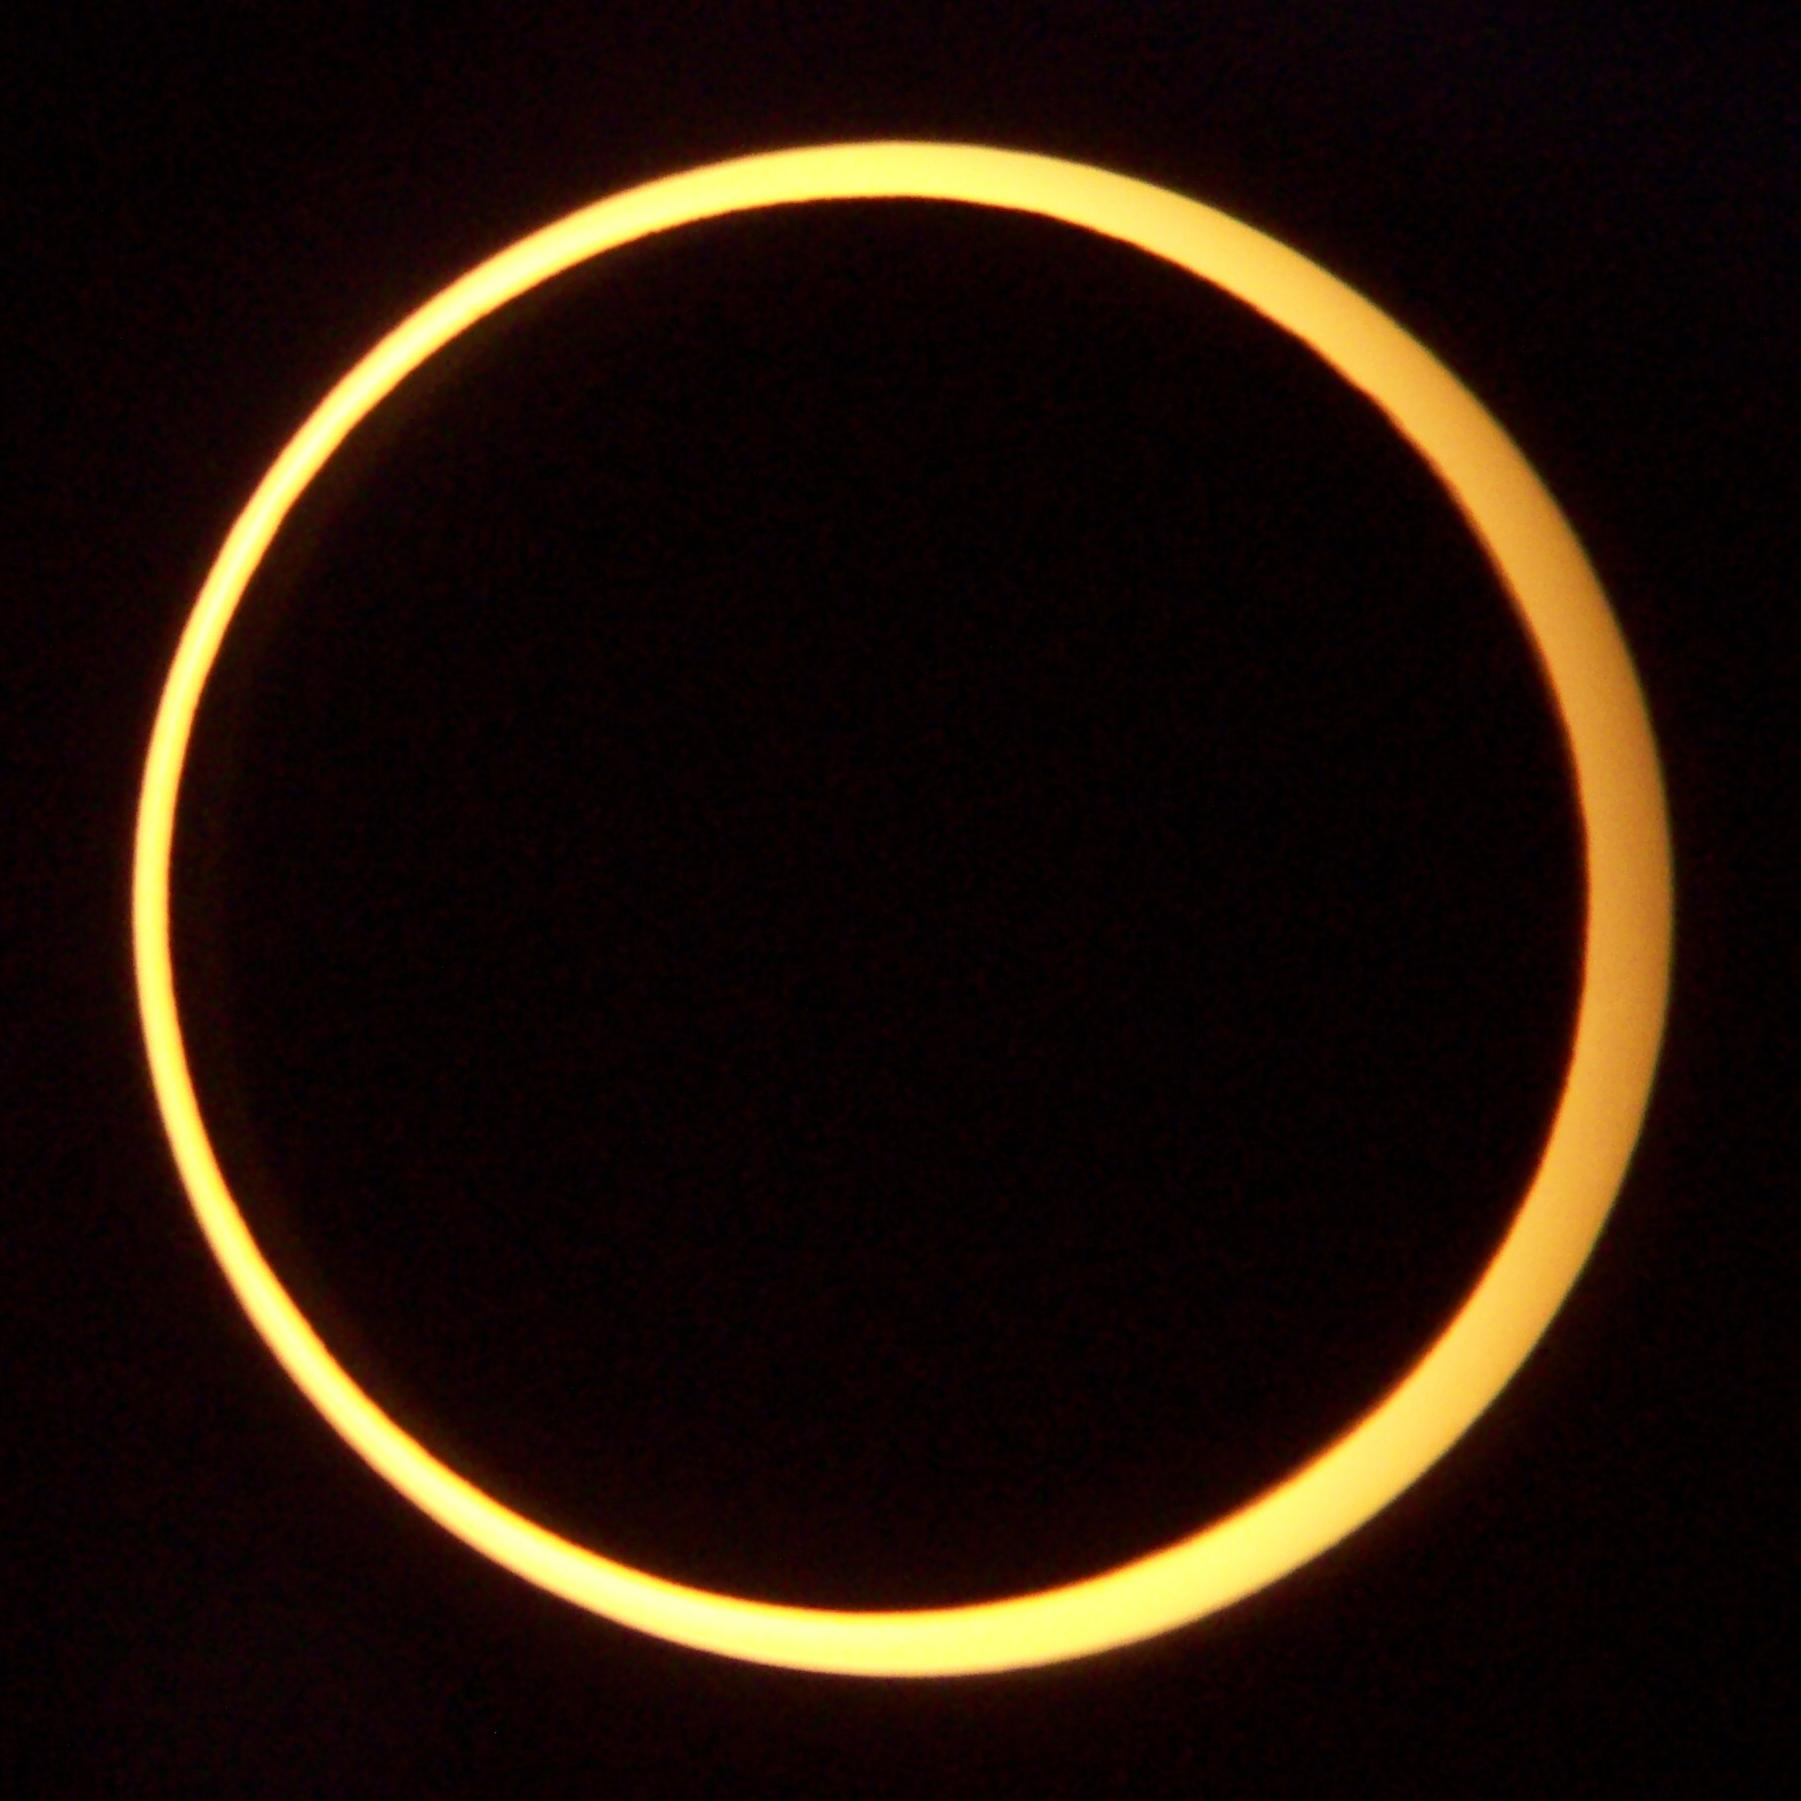 Eclipse Today Video